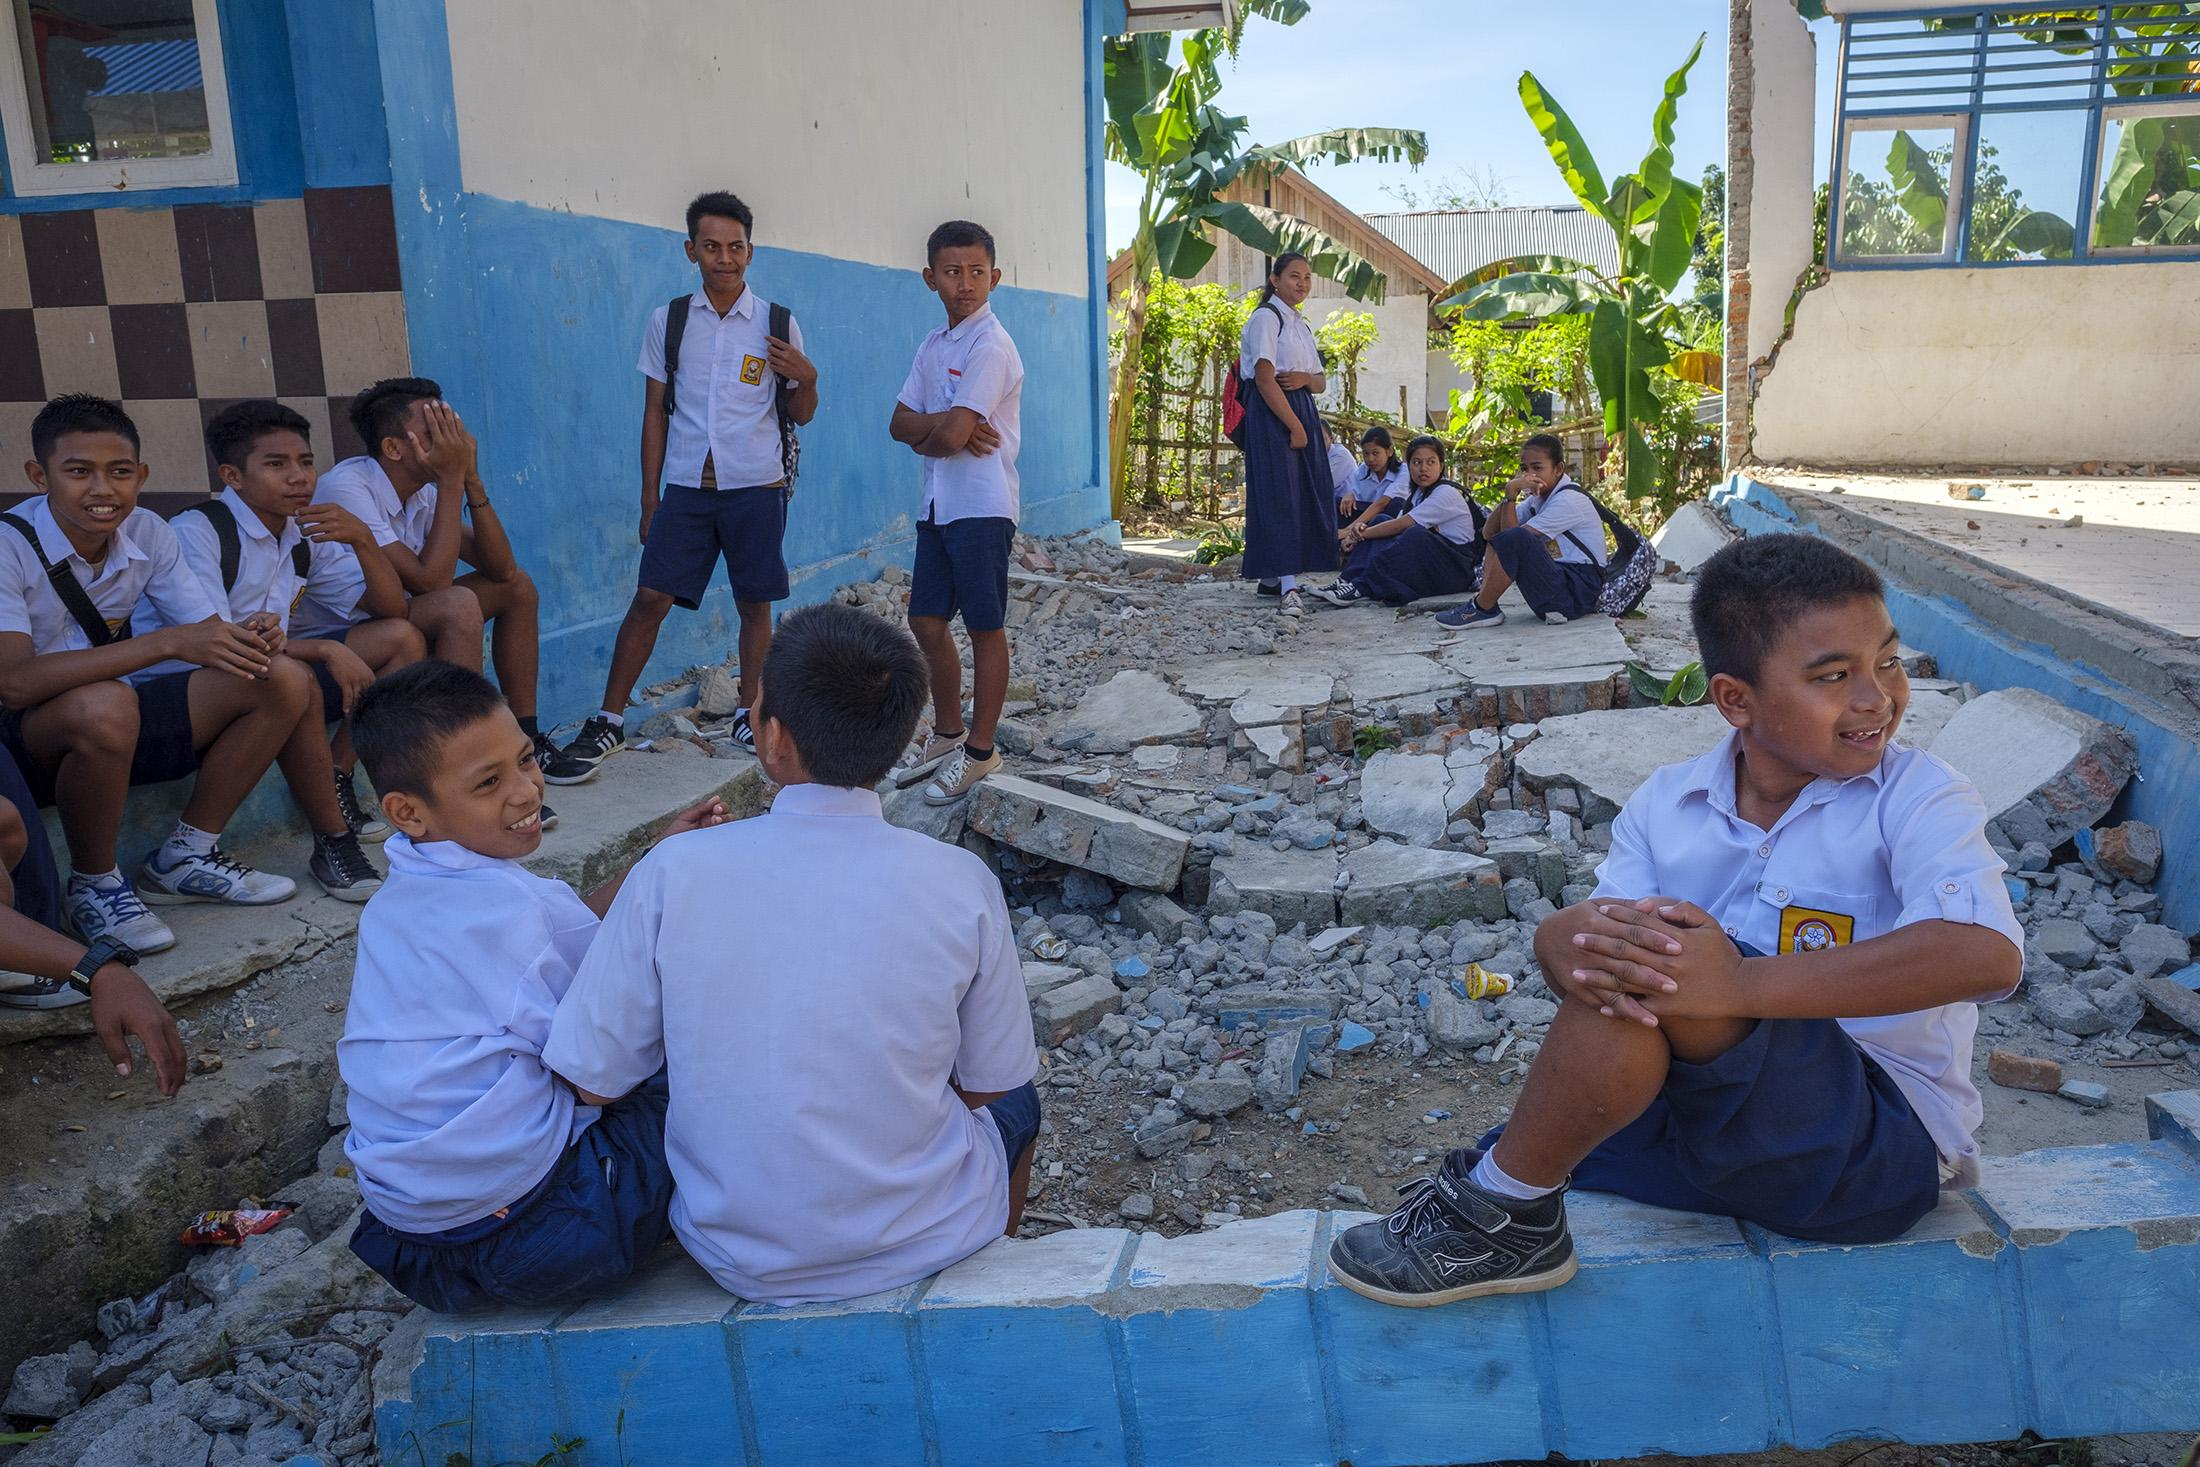 Recess at a damaged public elementary school supported by Save the Children in Donggala region, Central Sulawesi, Indonesia, February 25,  2019. A replacement school was built next door.